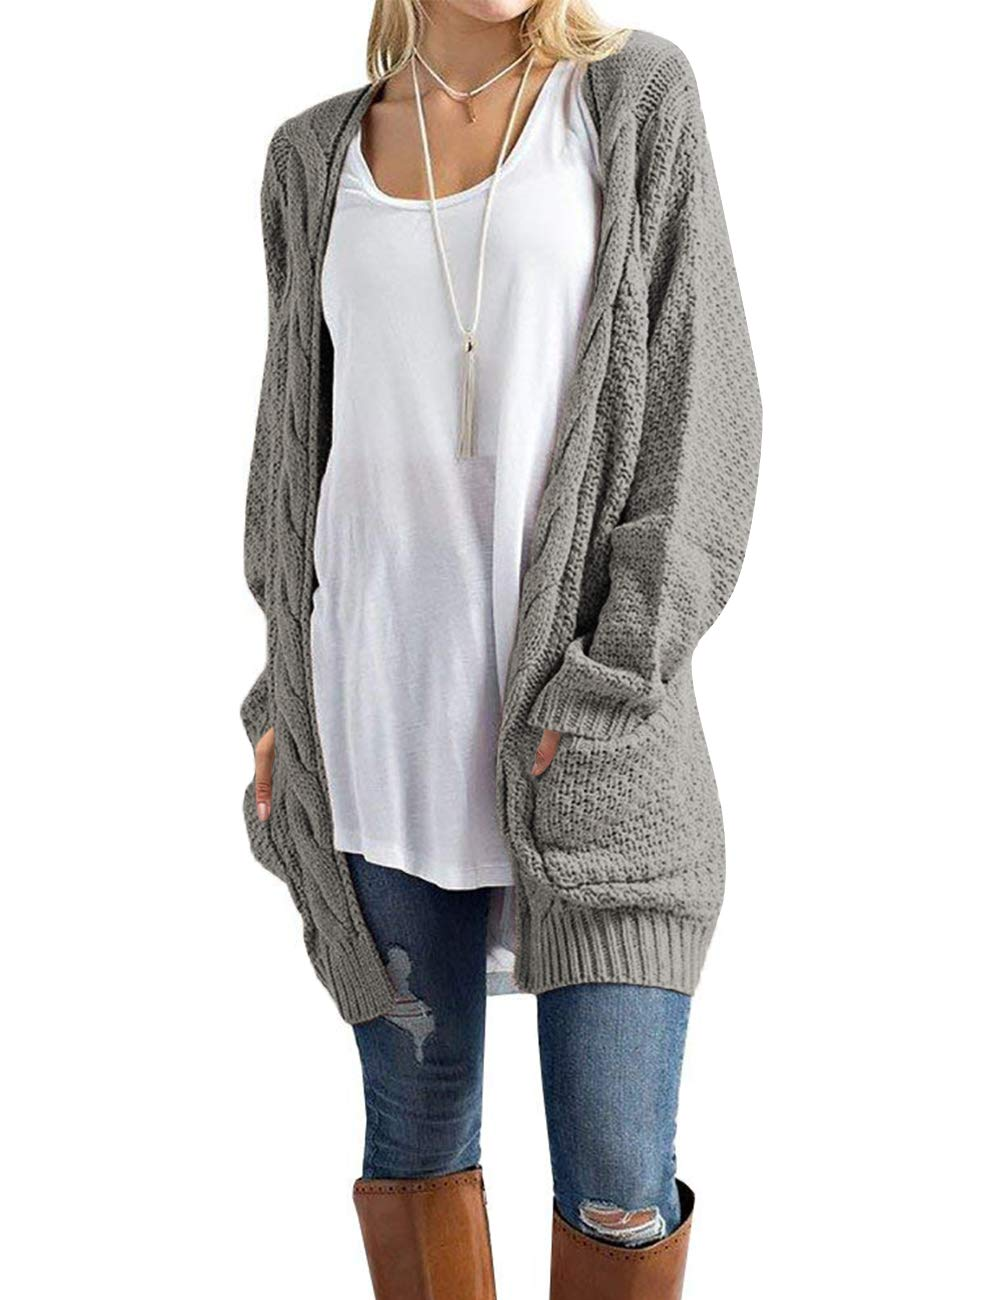 Traleubie Womens Open Front Cardigan Pockets Cable Knit Long Sleeve Sweaters Warm Tops Grey L by Traleubie